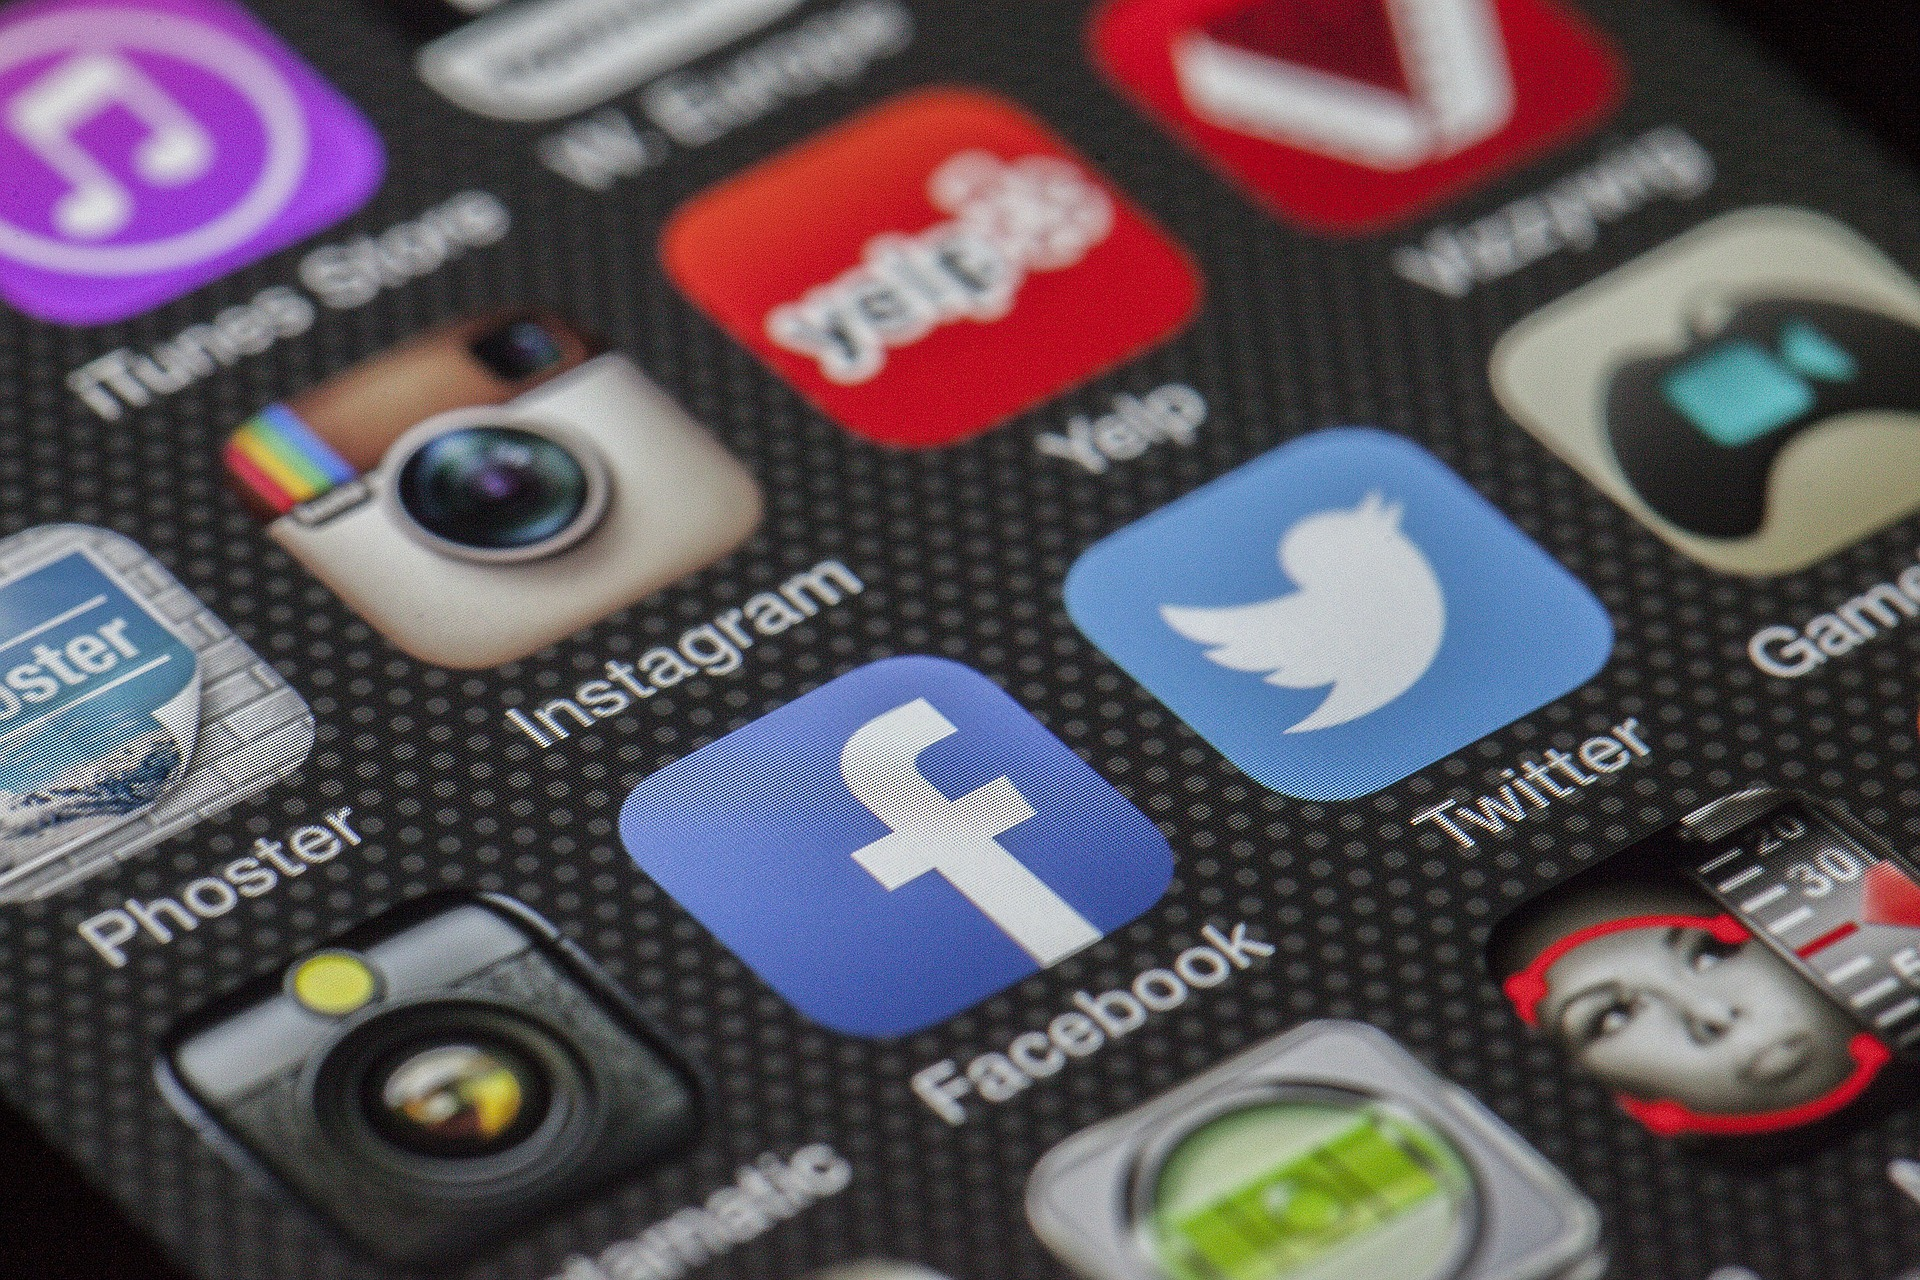 Mediaforce in the News – Facebook to inform users if their data was wrongly shared.